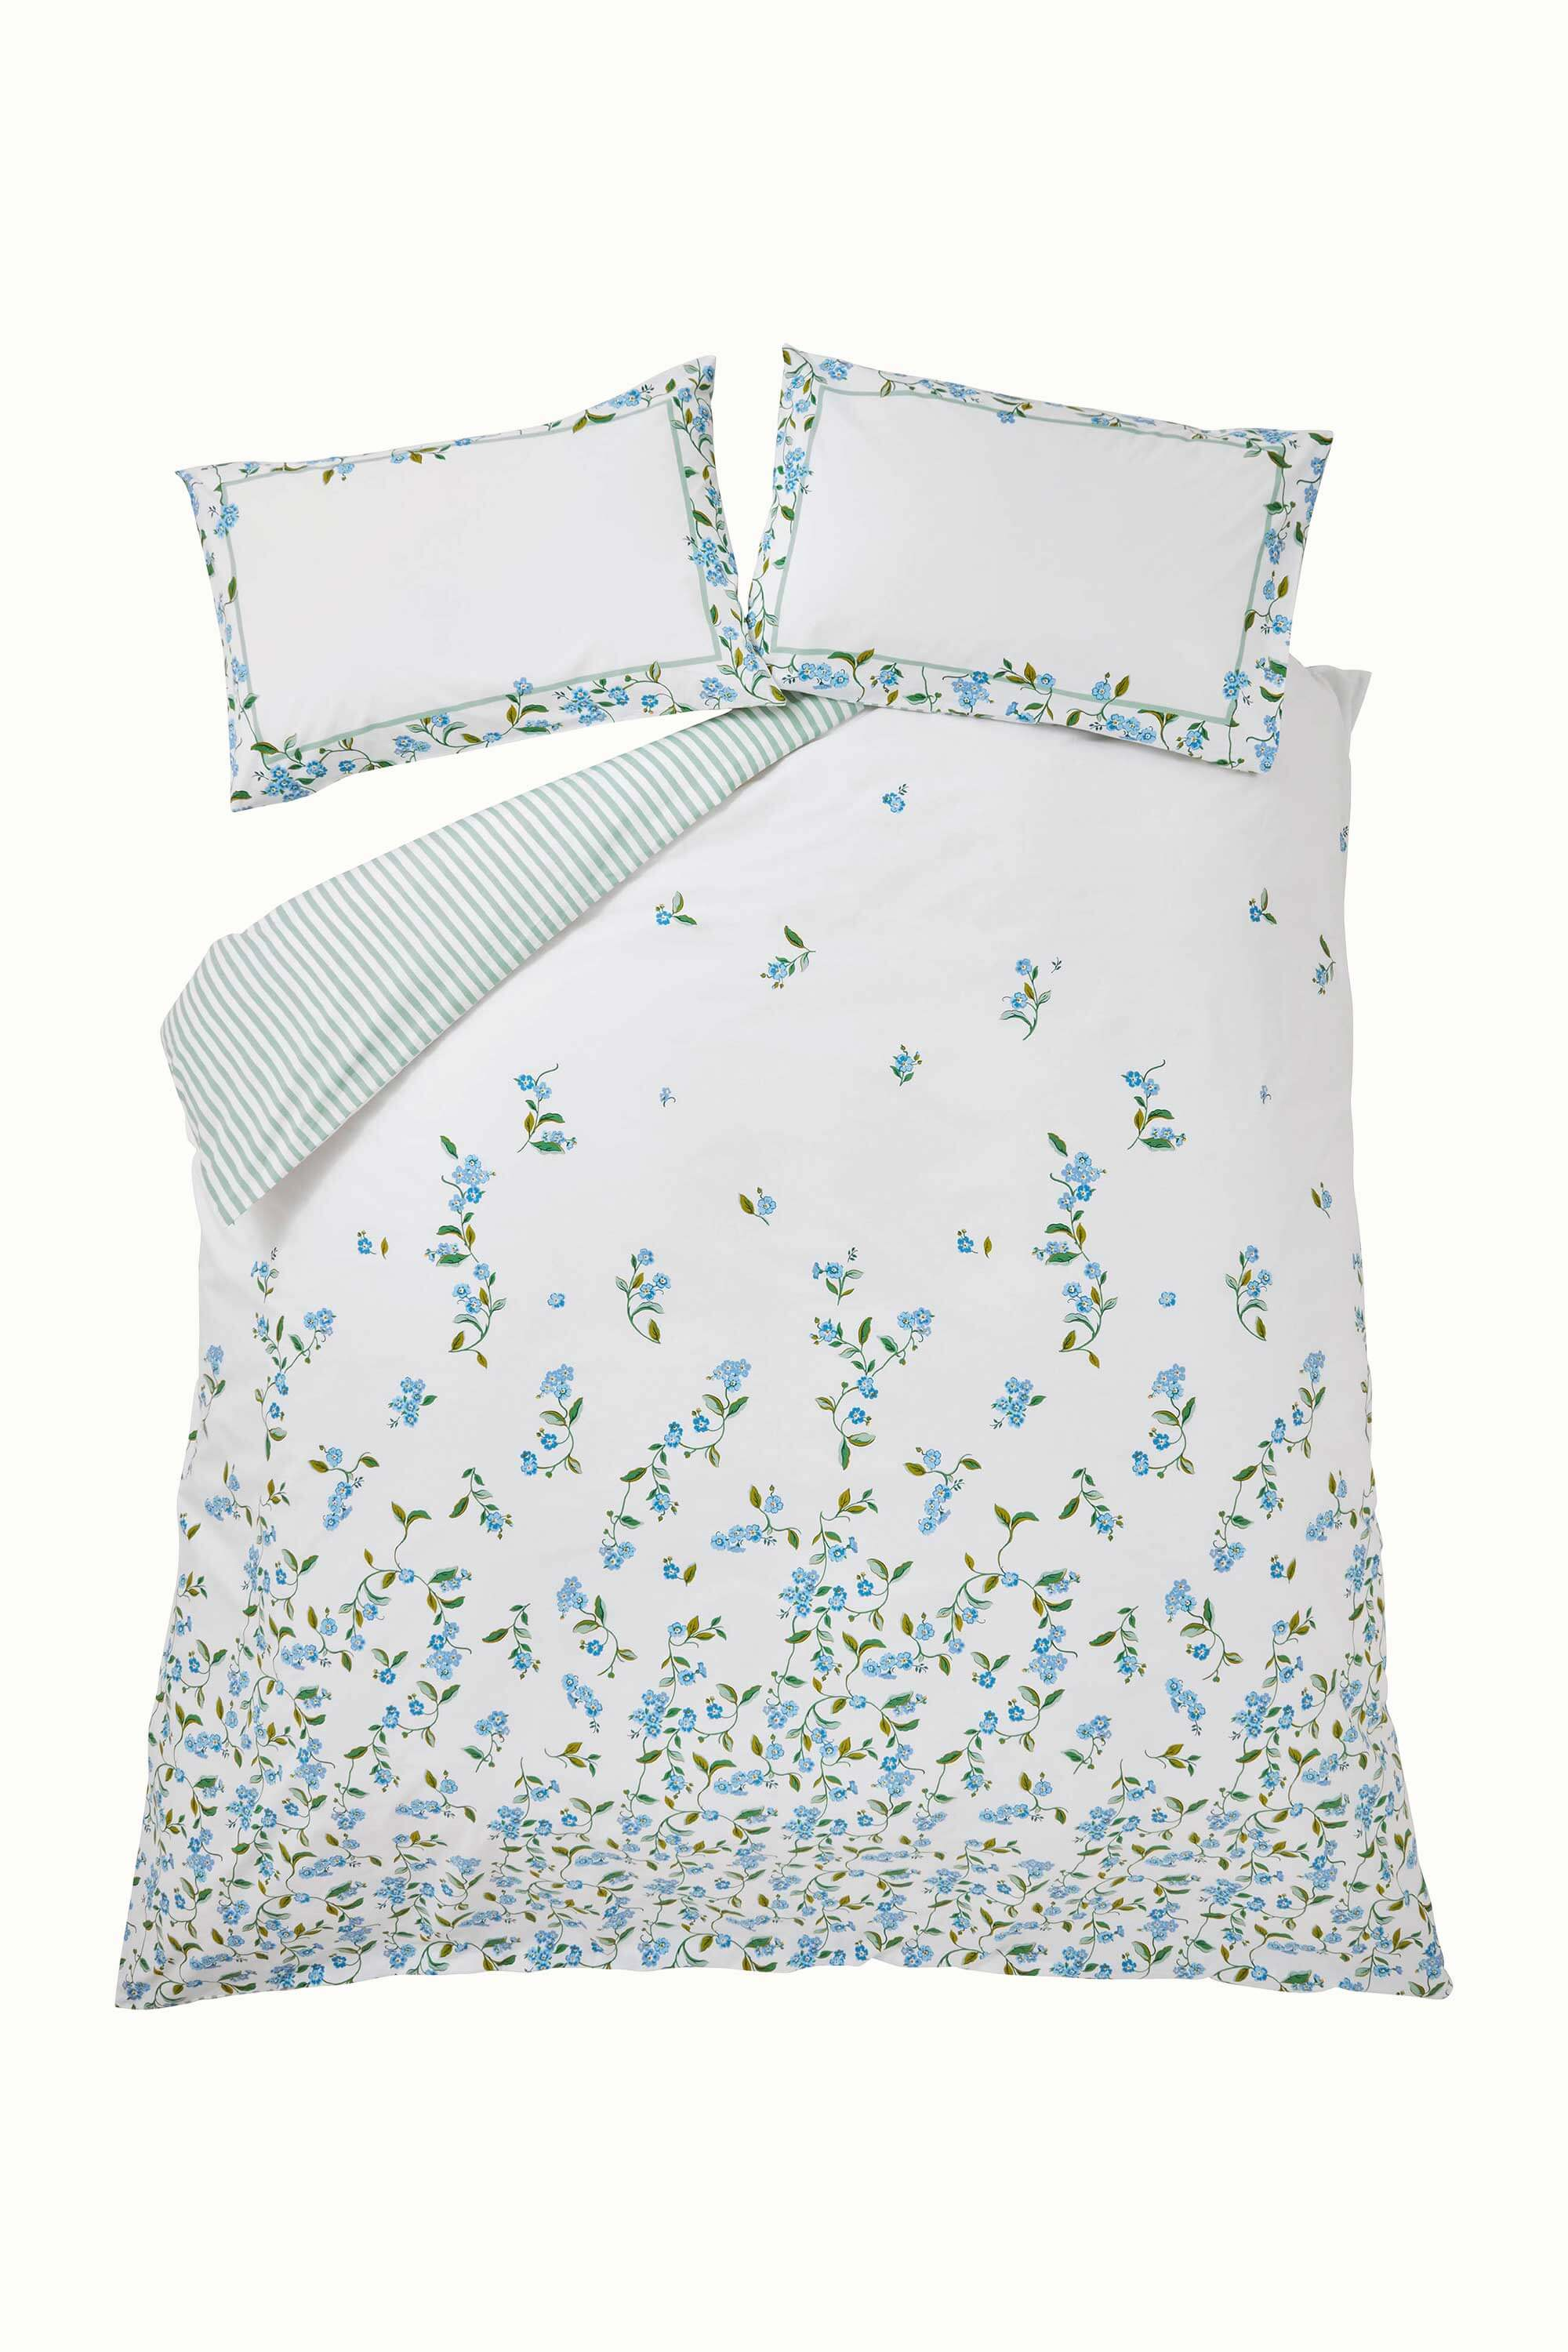 Cath Kidston Forget Me Not Bedding Set in Cream, Single